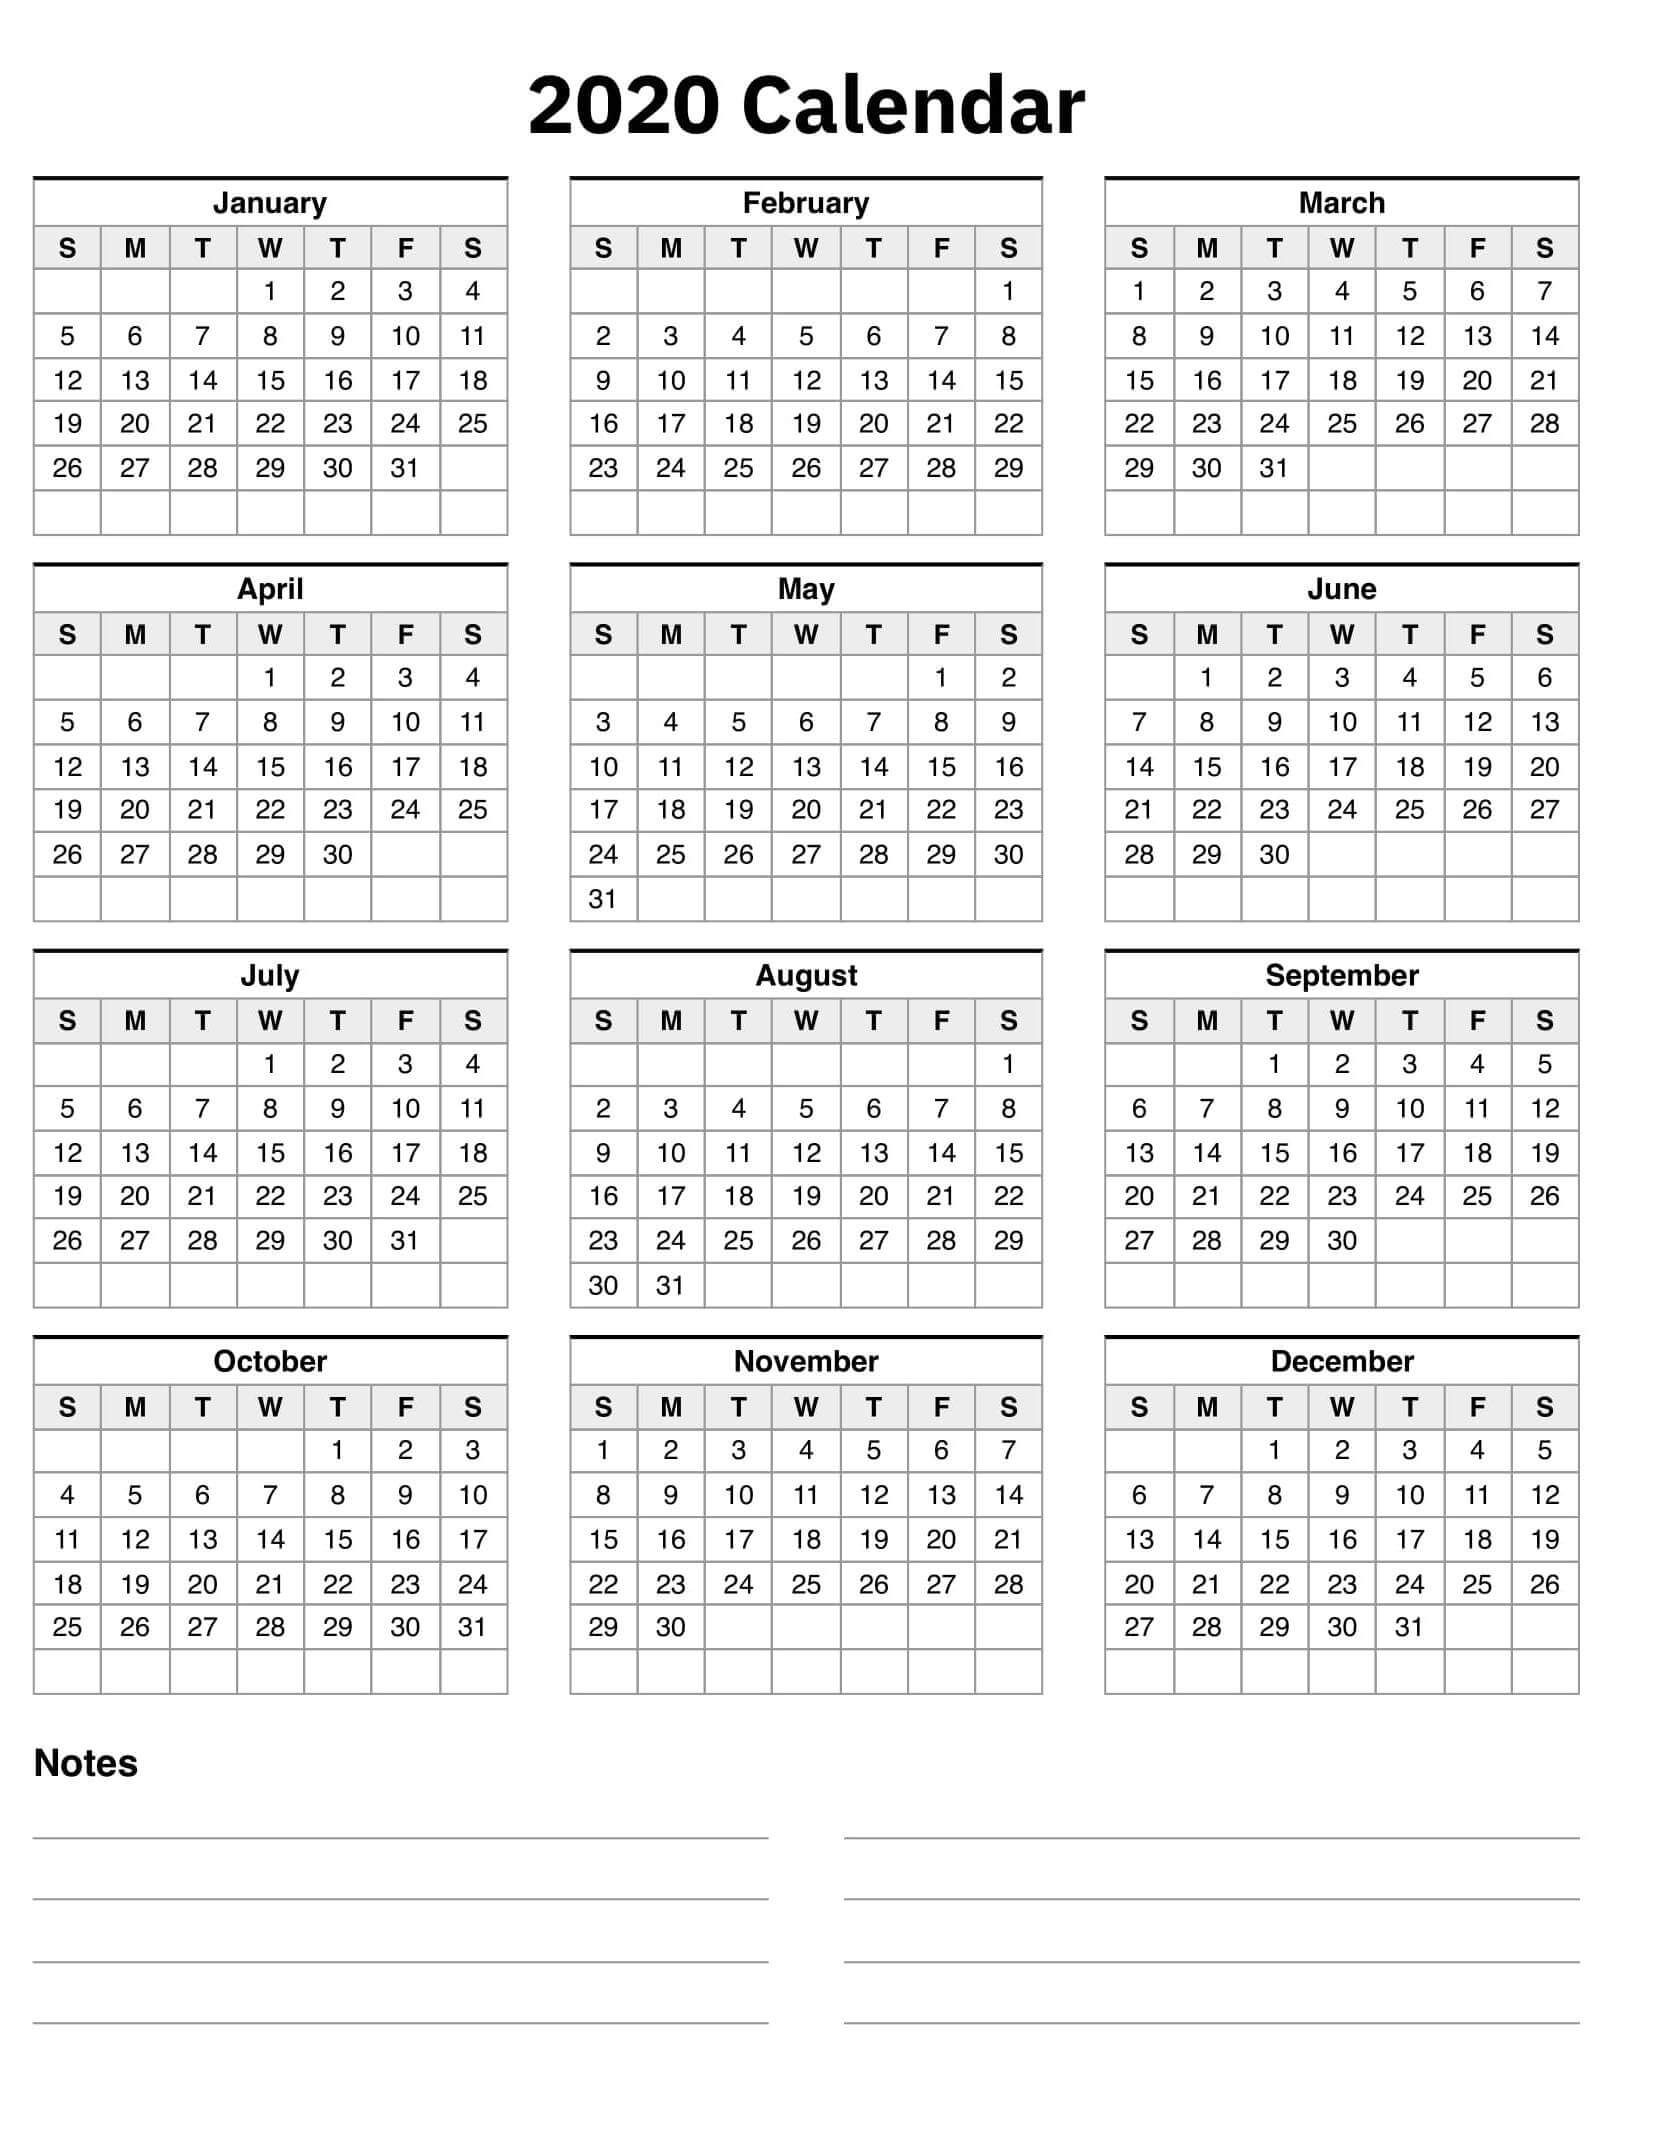 Printable Calendar 2020 With Notes